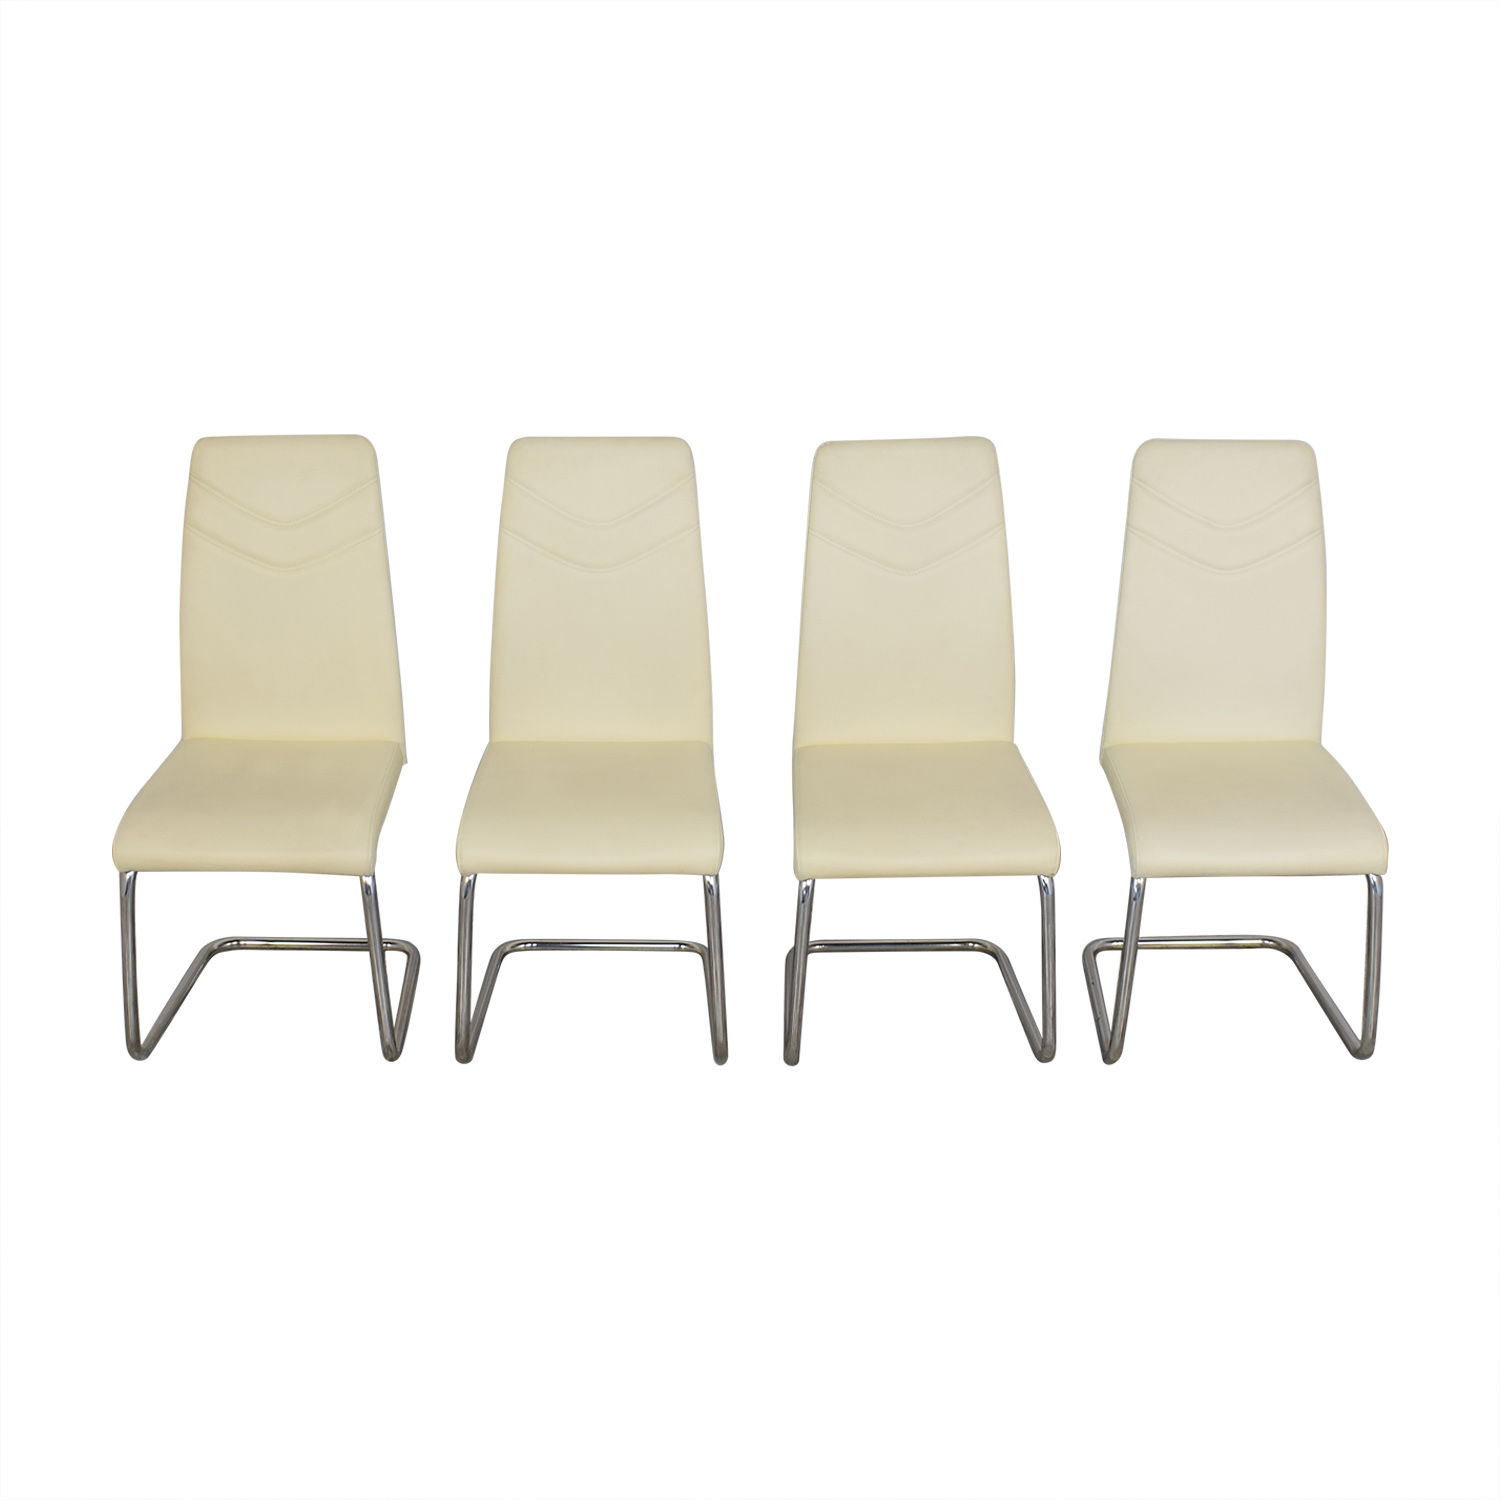 shop Effezeta Leather Dining Chairs Effezeta